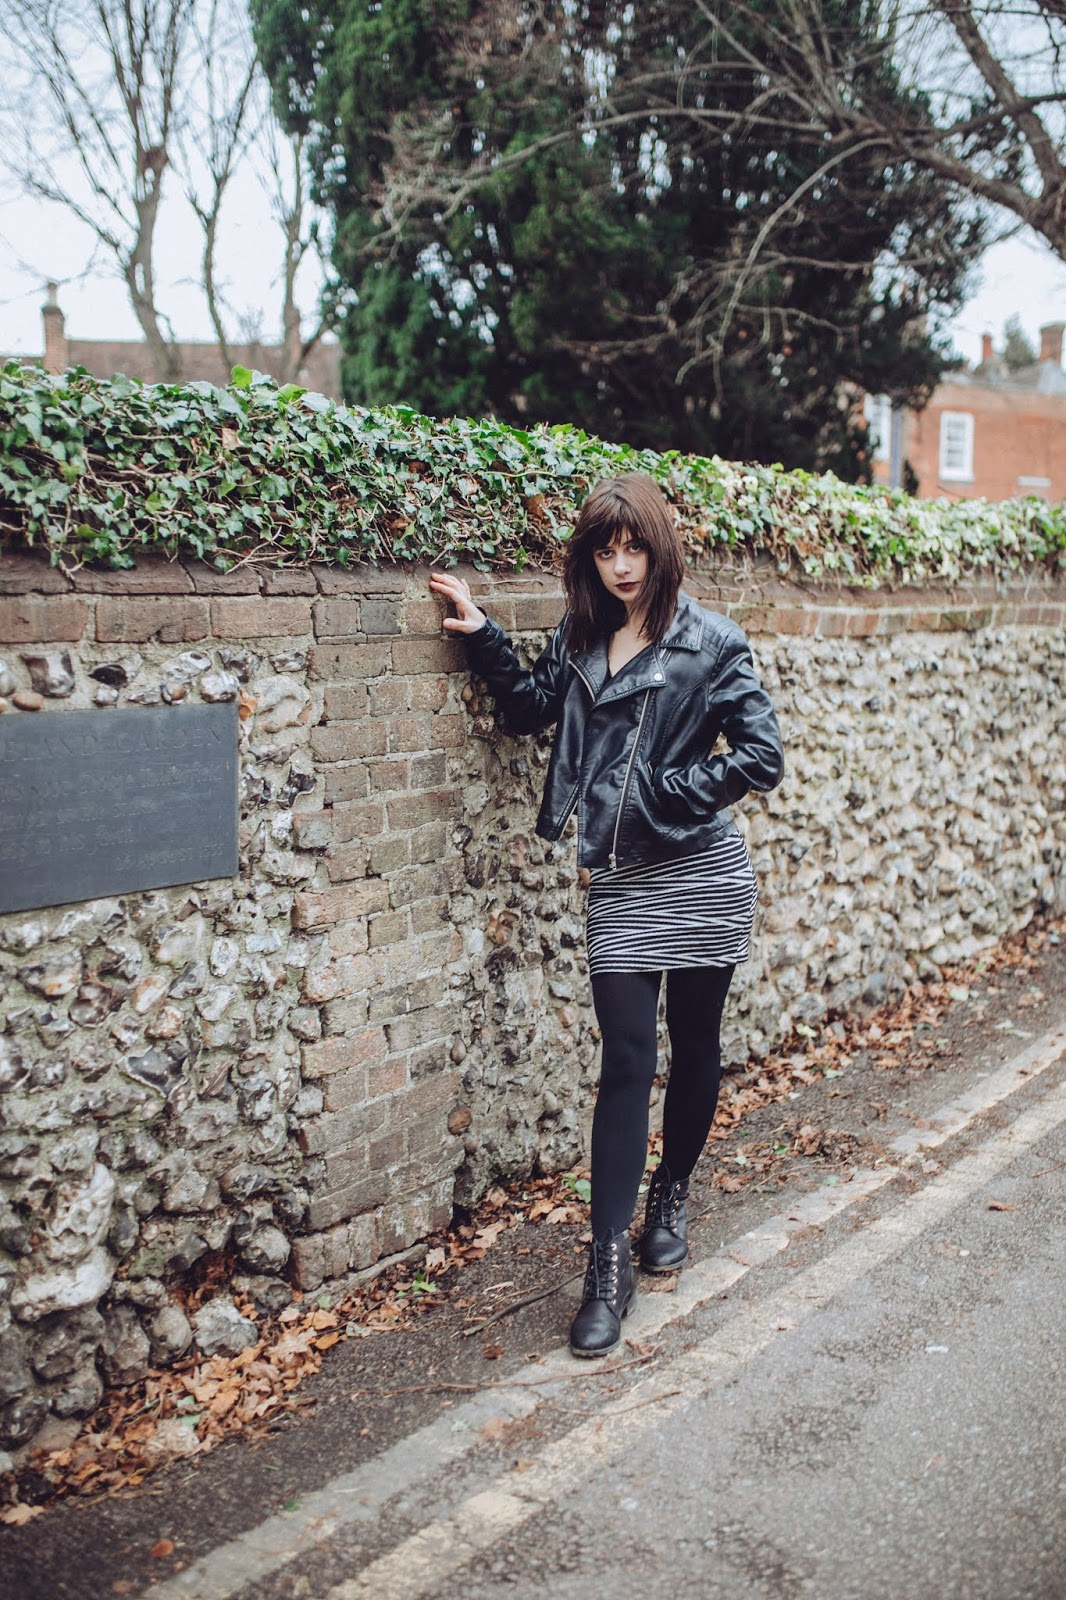 Laura is standing in front of a brick wall. She is wearing a leather jacket and a pencil skirt